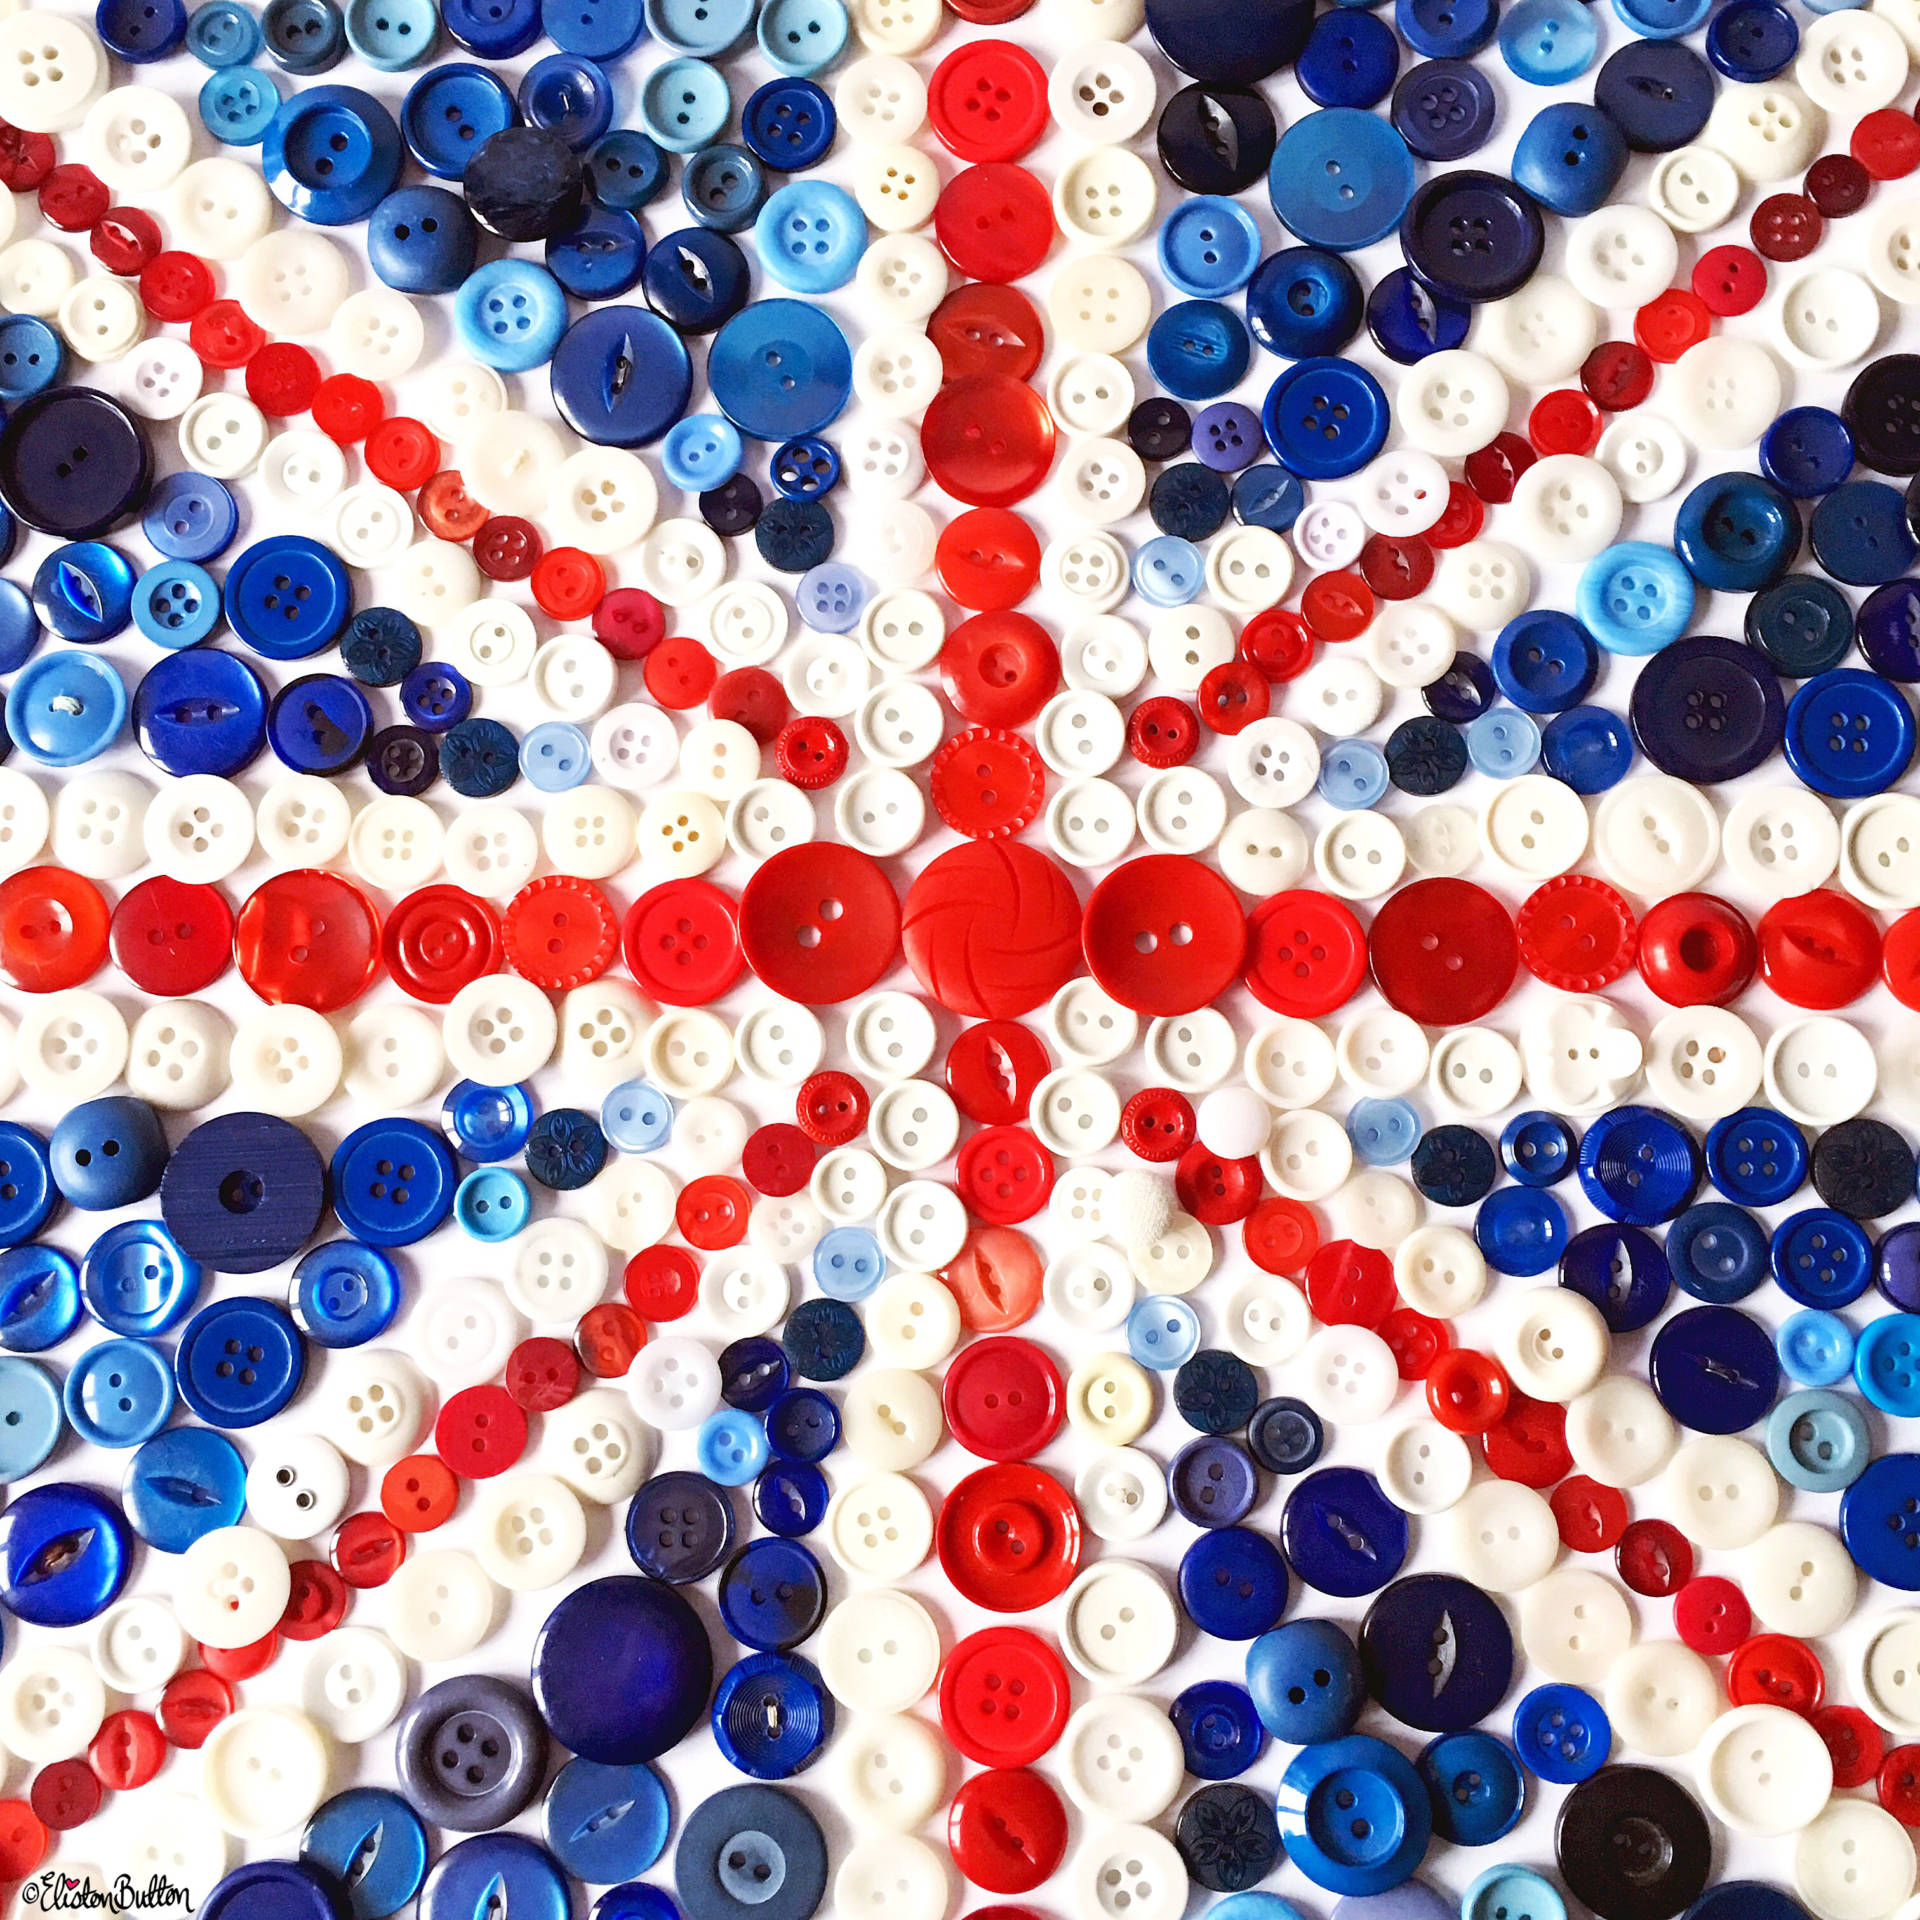 Day 26 - My Country - Button Art Union Jack Flag - Photo-a-Day – October 2016 at www.elistonbutton.com - Eliston Button - That Crafty Kid – Art, Design, Craft & Adventure.